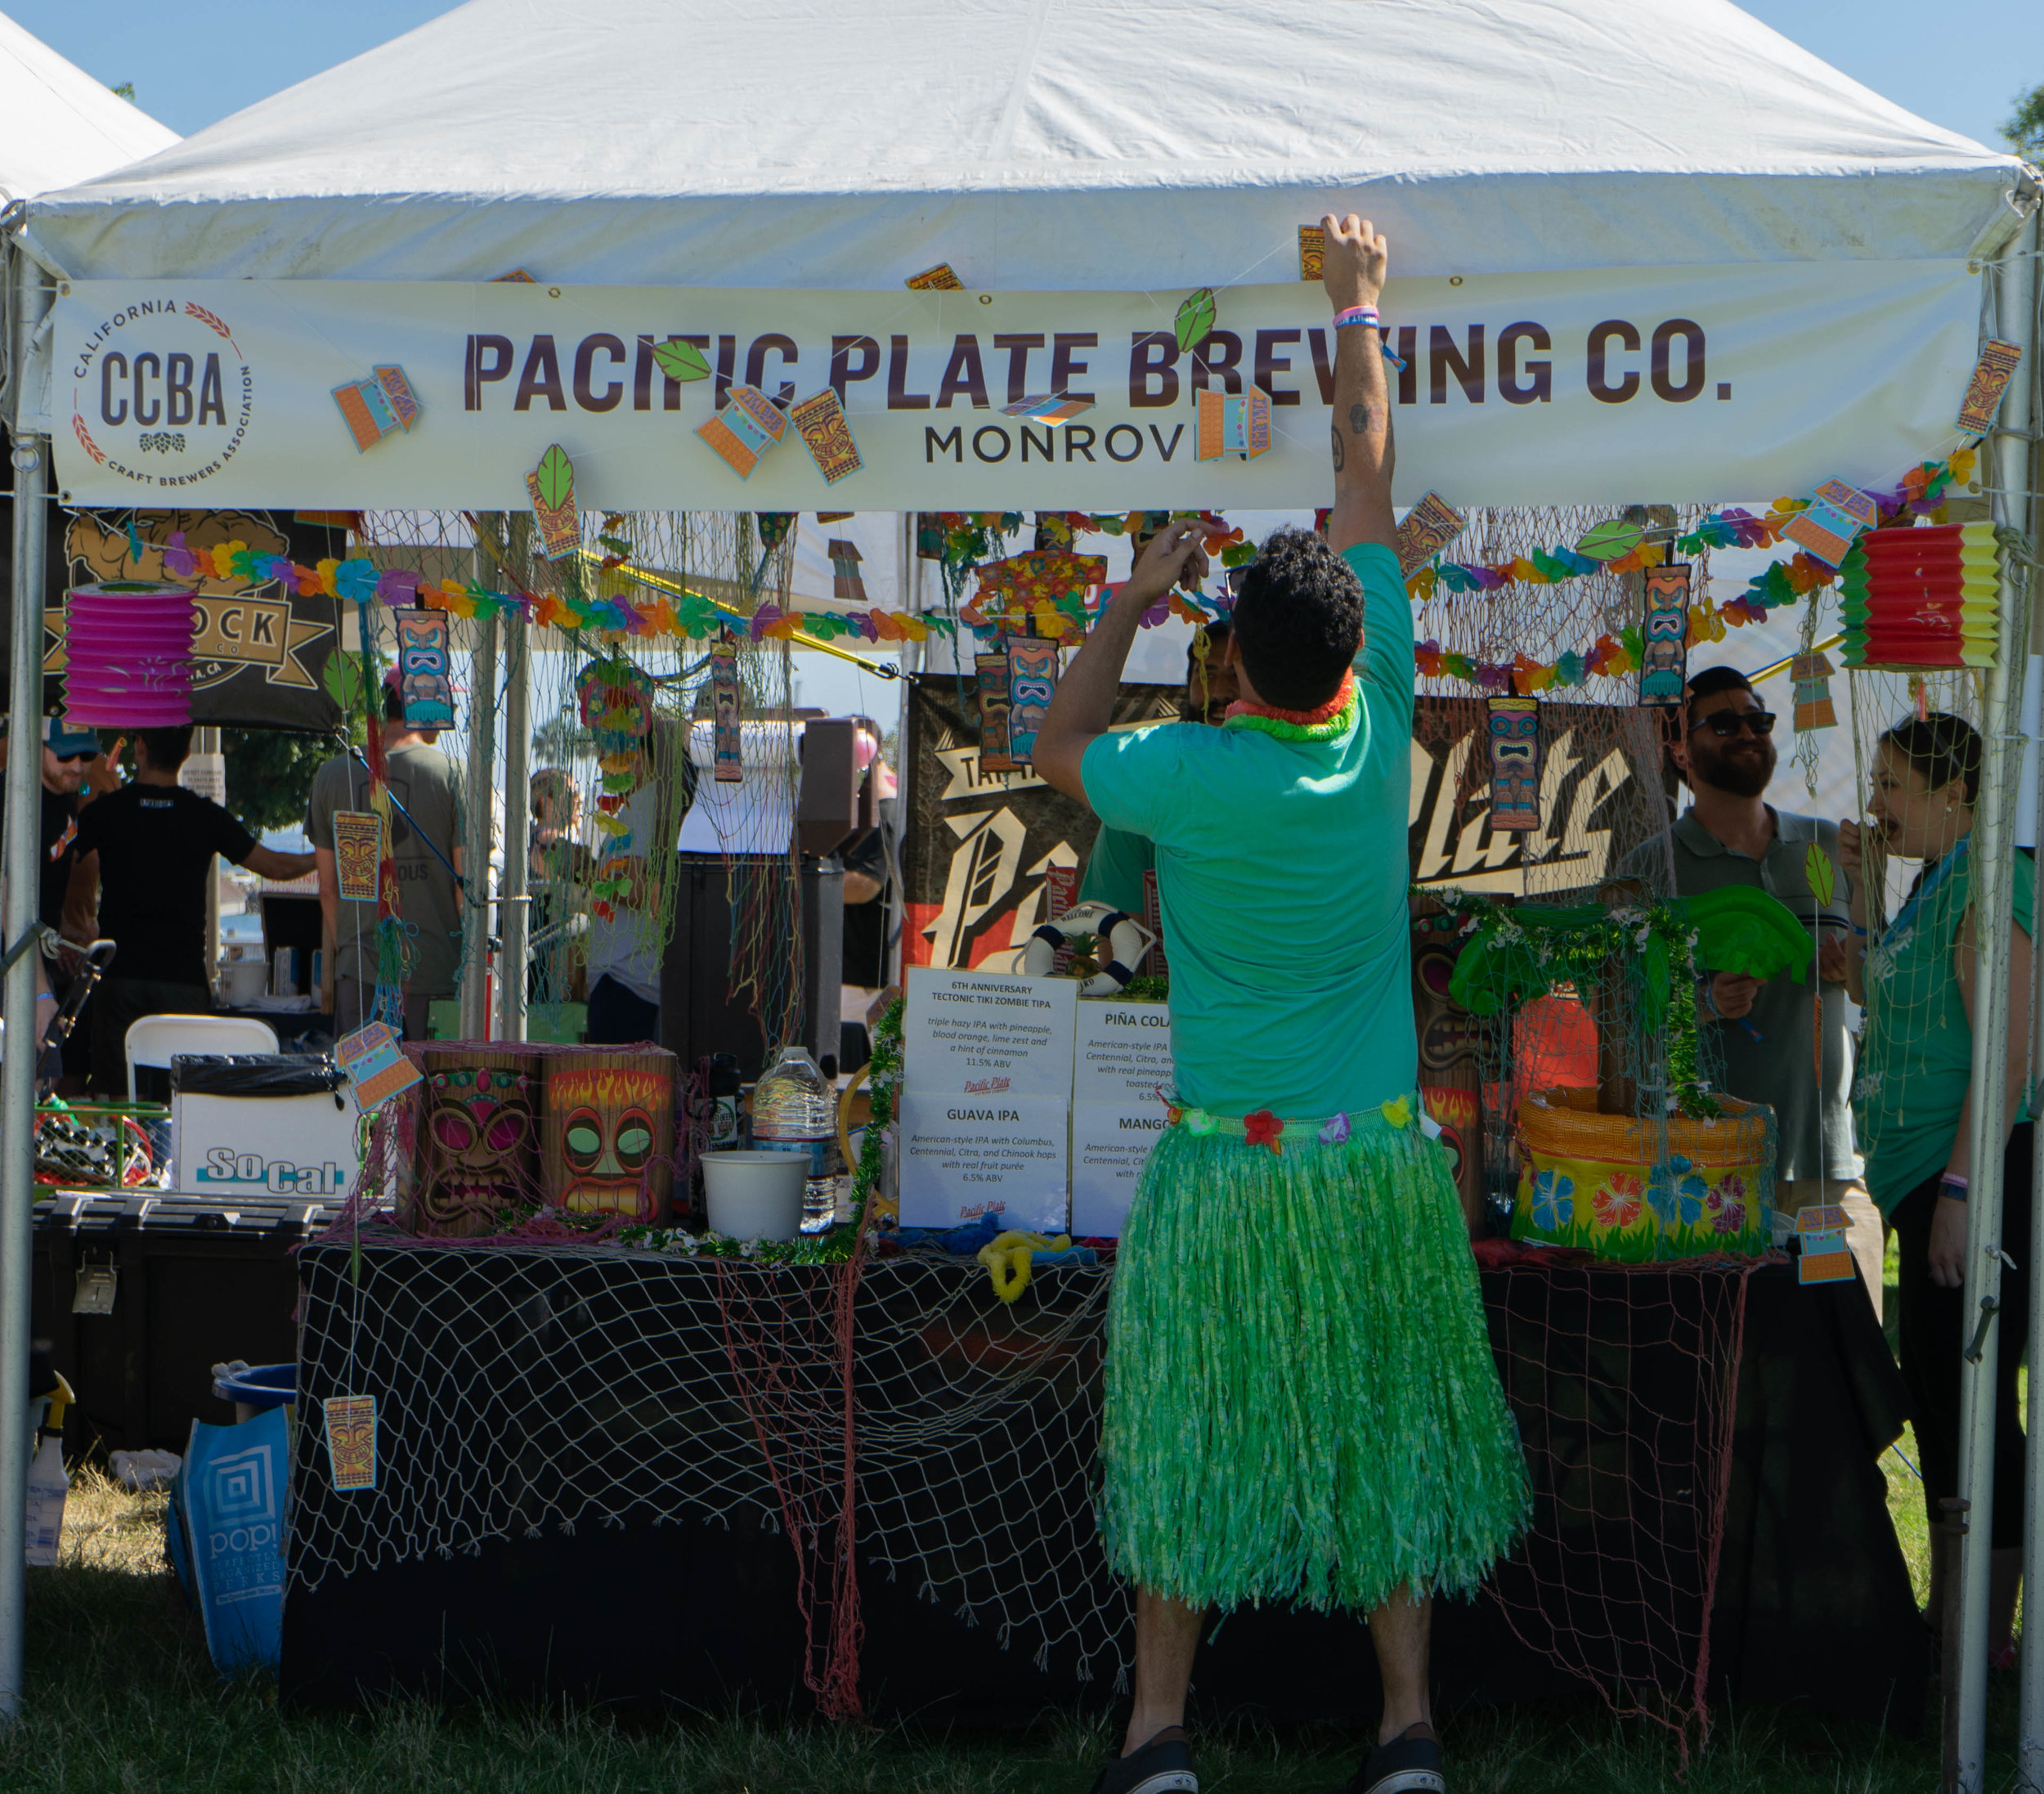 Many of the breweries had fun decorations and cool stickers to attract patrons to come sample their wares.